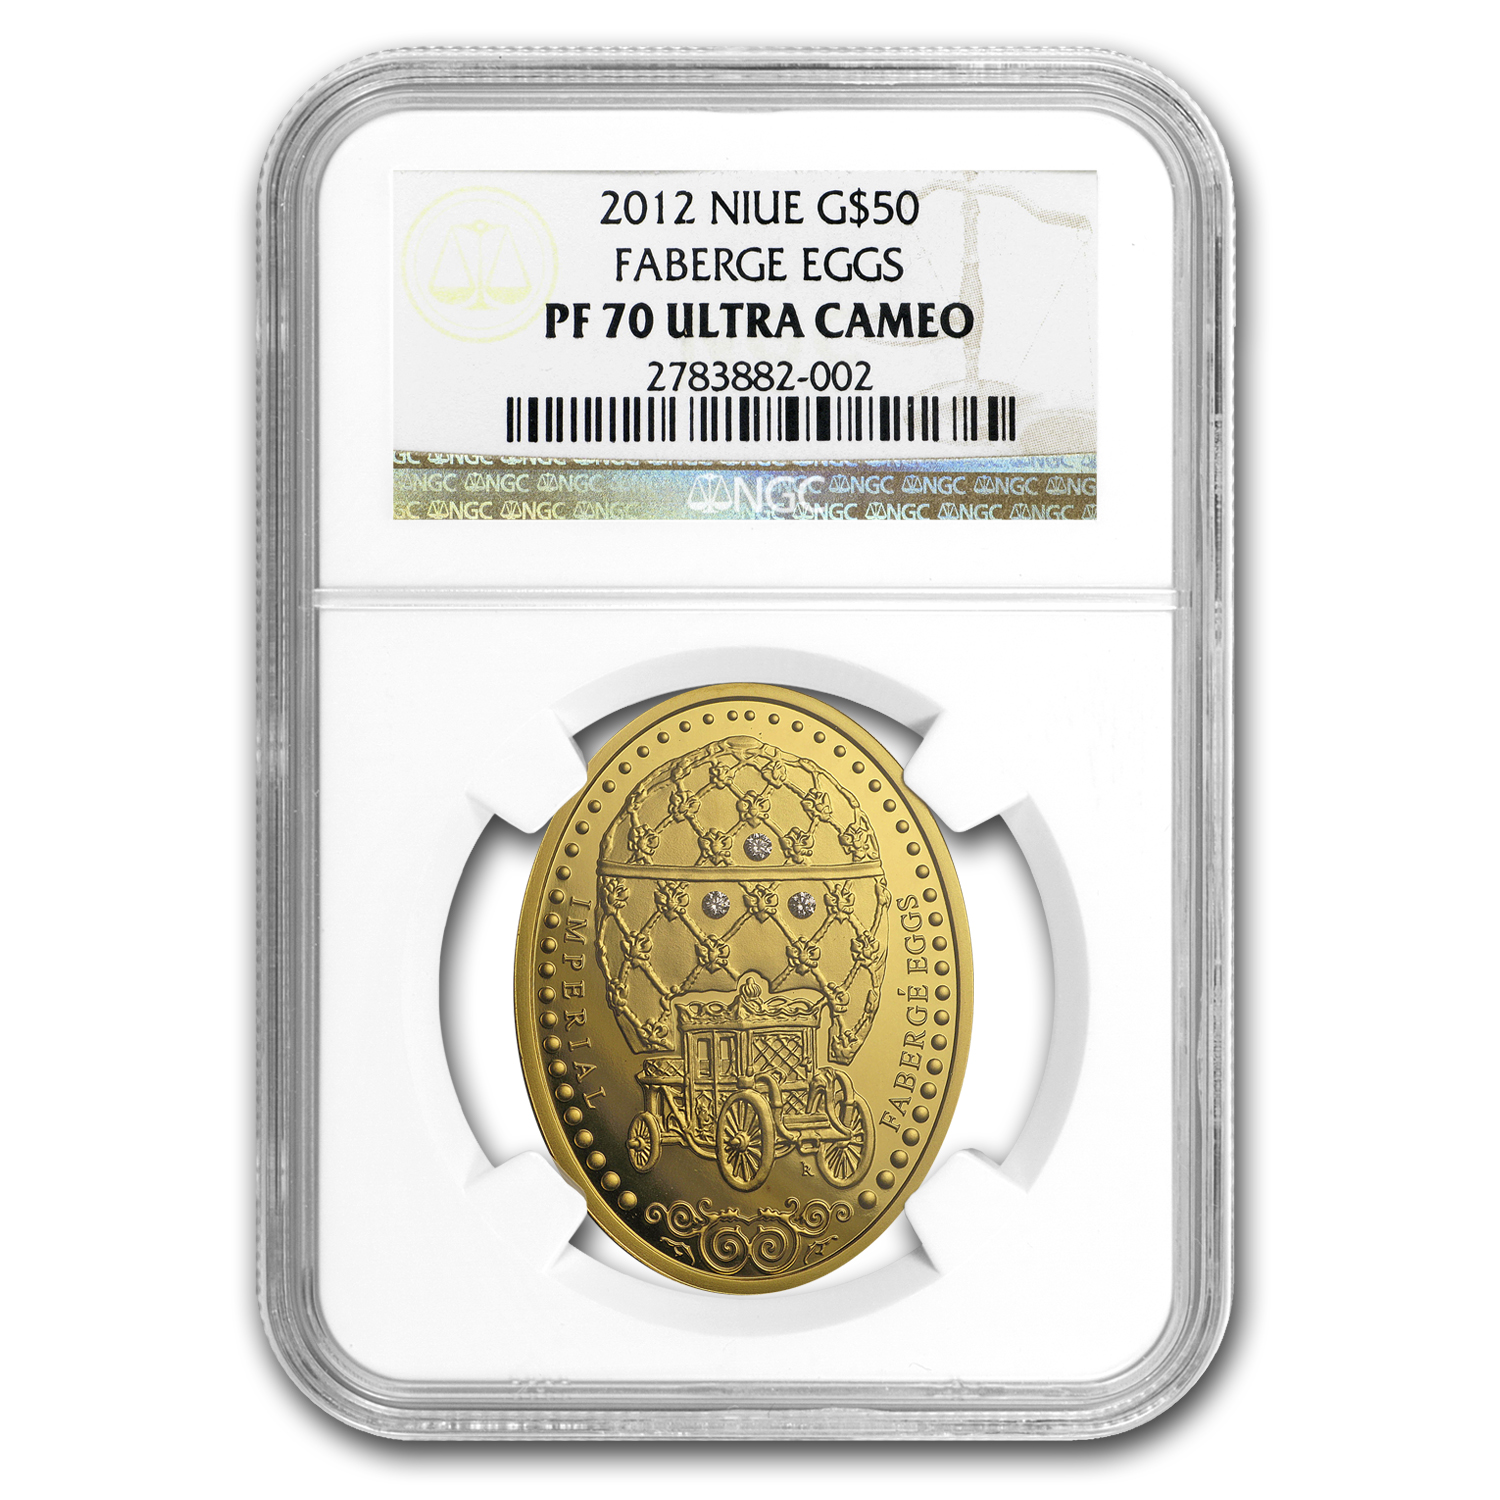 2012 Niue Proof Gold $50 Imperial Fabergé Egg PF-70 NGC